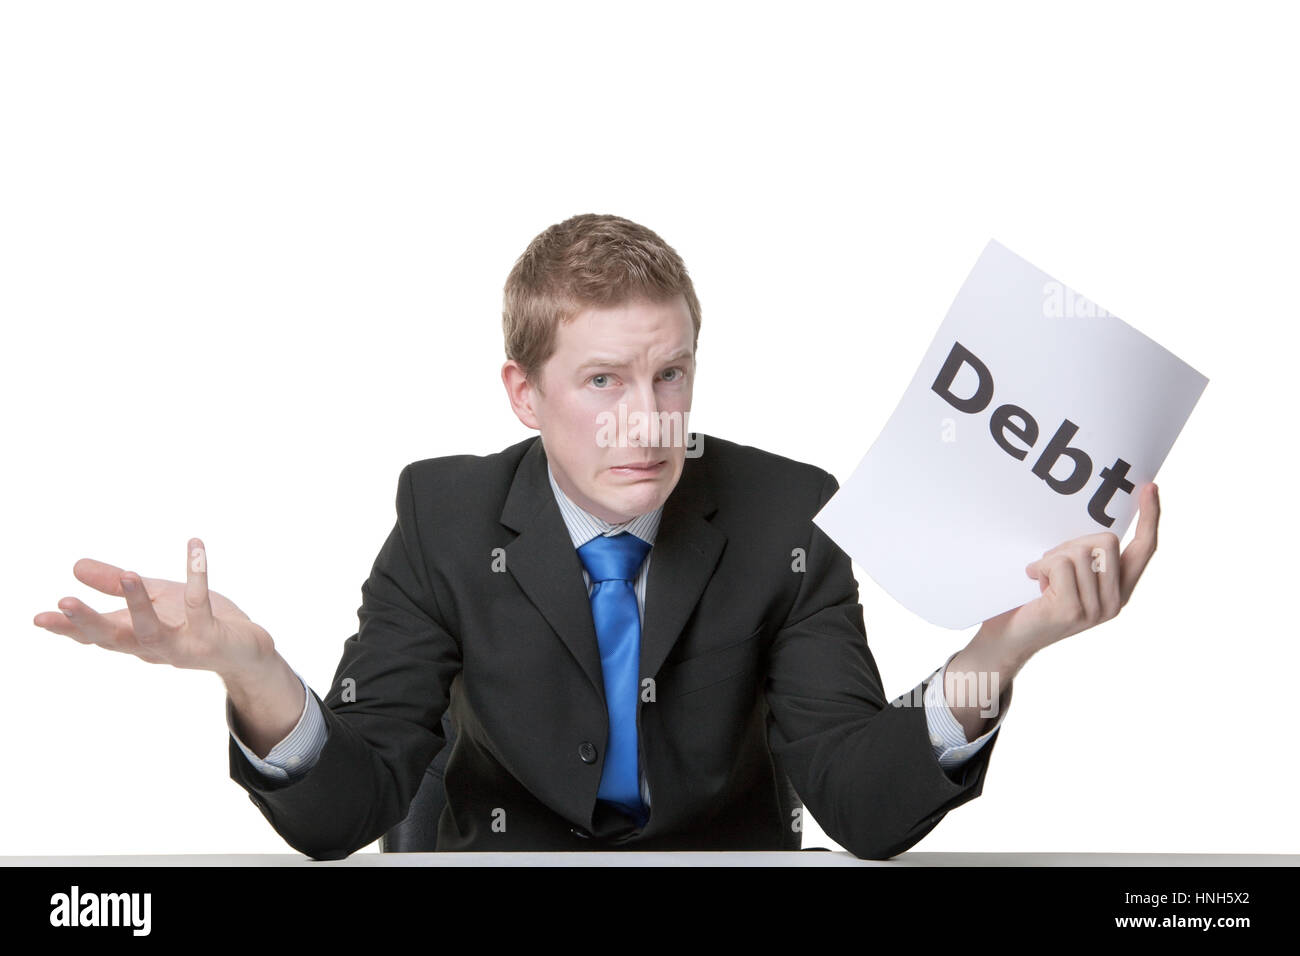 business man holding a paper sign with the words money worries writen on it looking unhappy - Stock Image